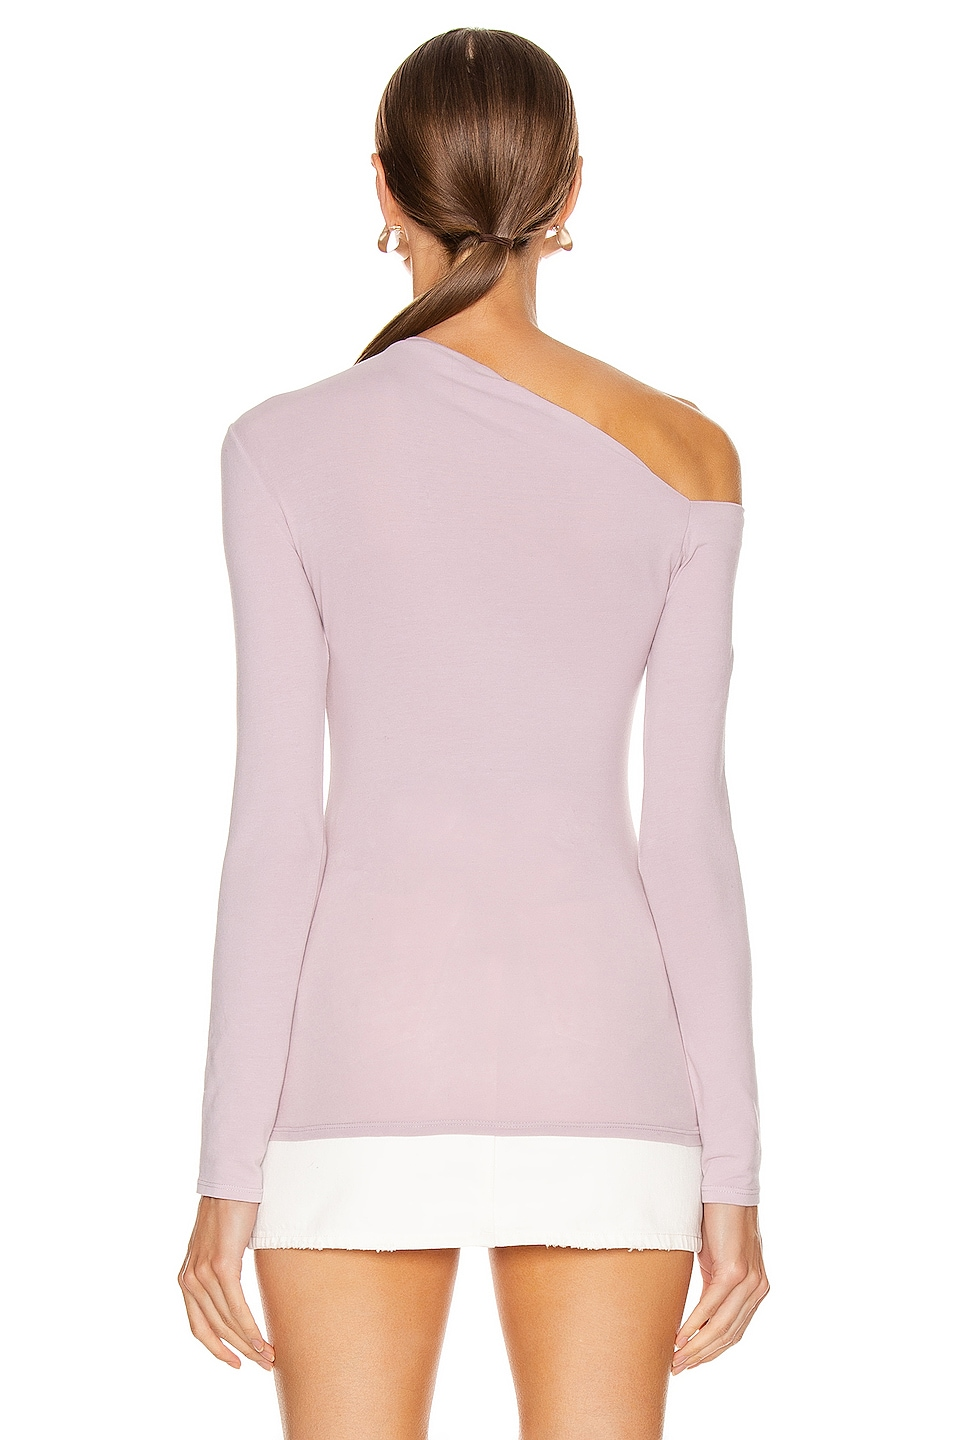 Image 4 of Enza Costa Angled Exposed Shoulder Long Sleeve Top in Pink Crystals